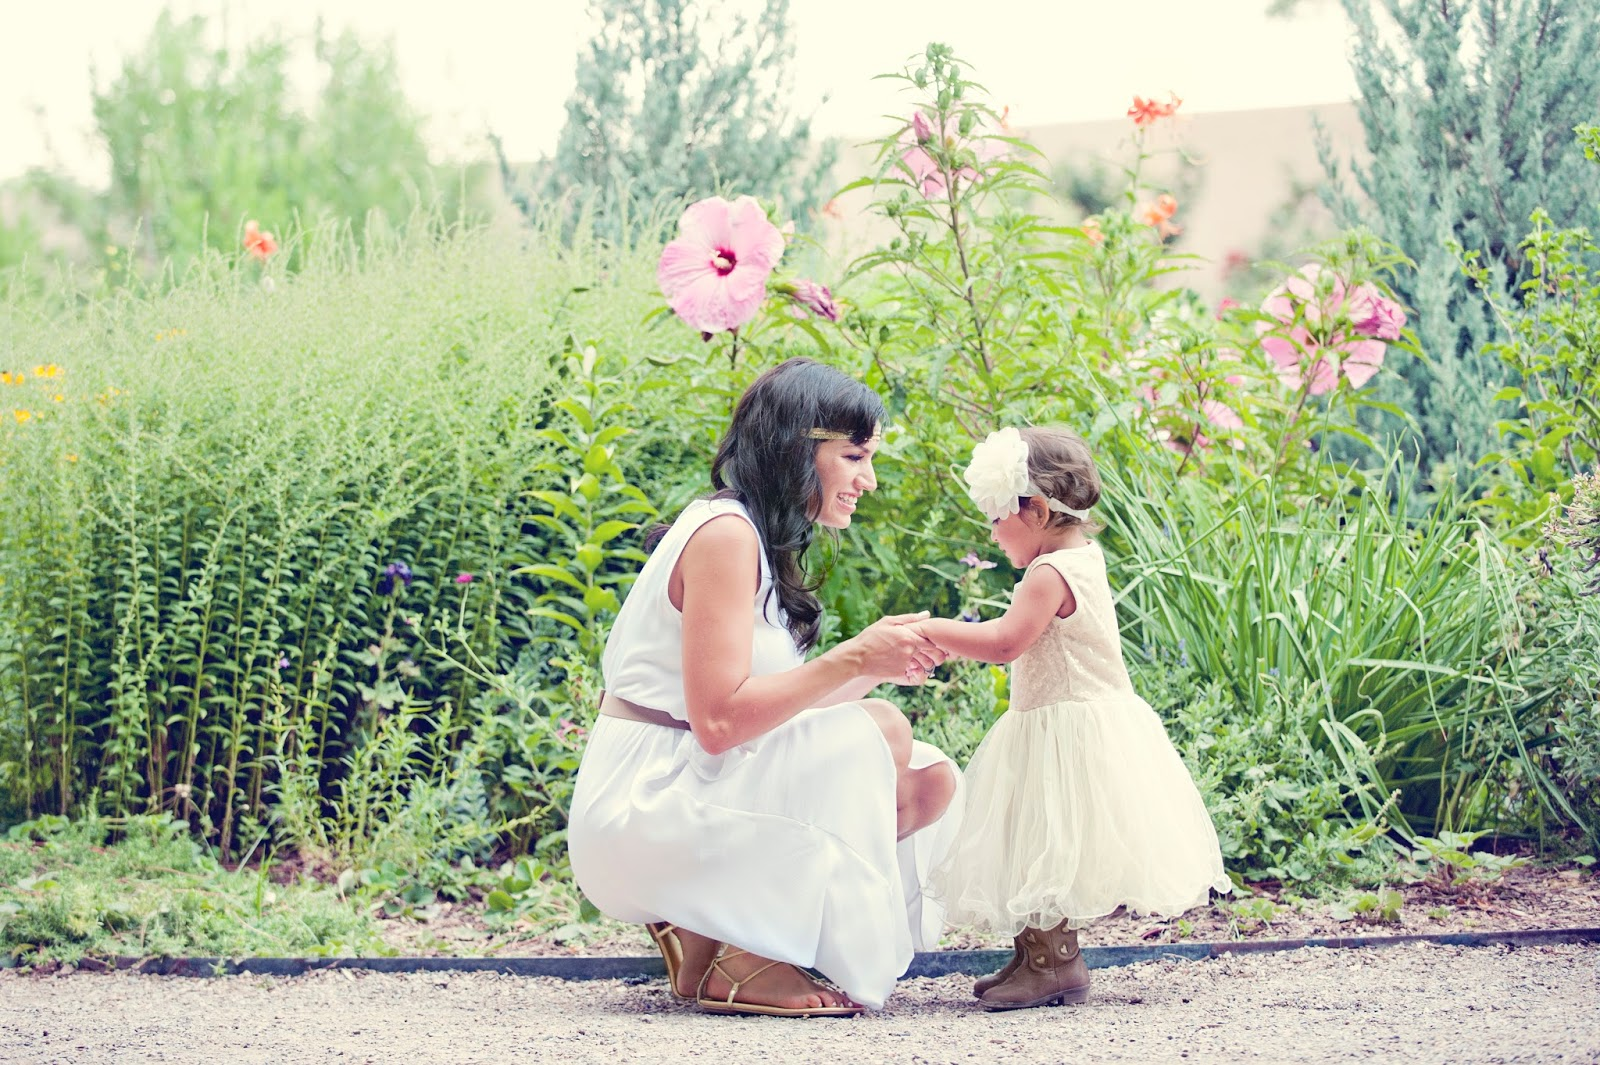 Mommy and Me photoshoot, second birthday photoshoot, little girl photoshoot, botanical gardens photoshoot, kid photography, children photography albuquerque, children photography new mexico, mother and daughter photos, mother and daughter photoshoot., family photography, albuquerque family pjhotography, children photographer, family photographer in albuquerque